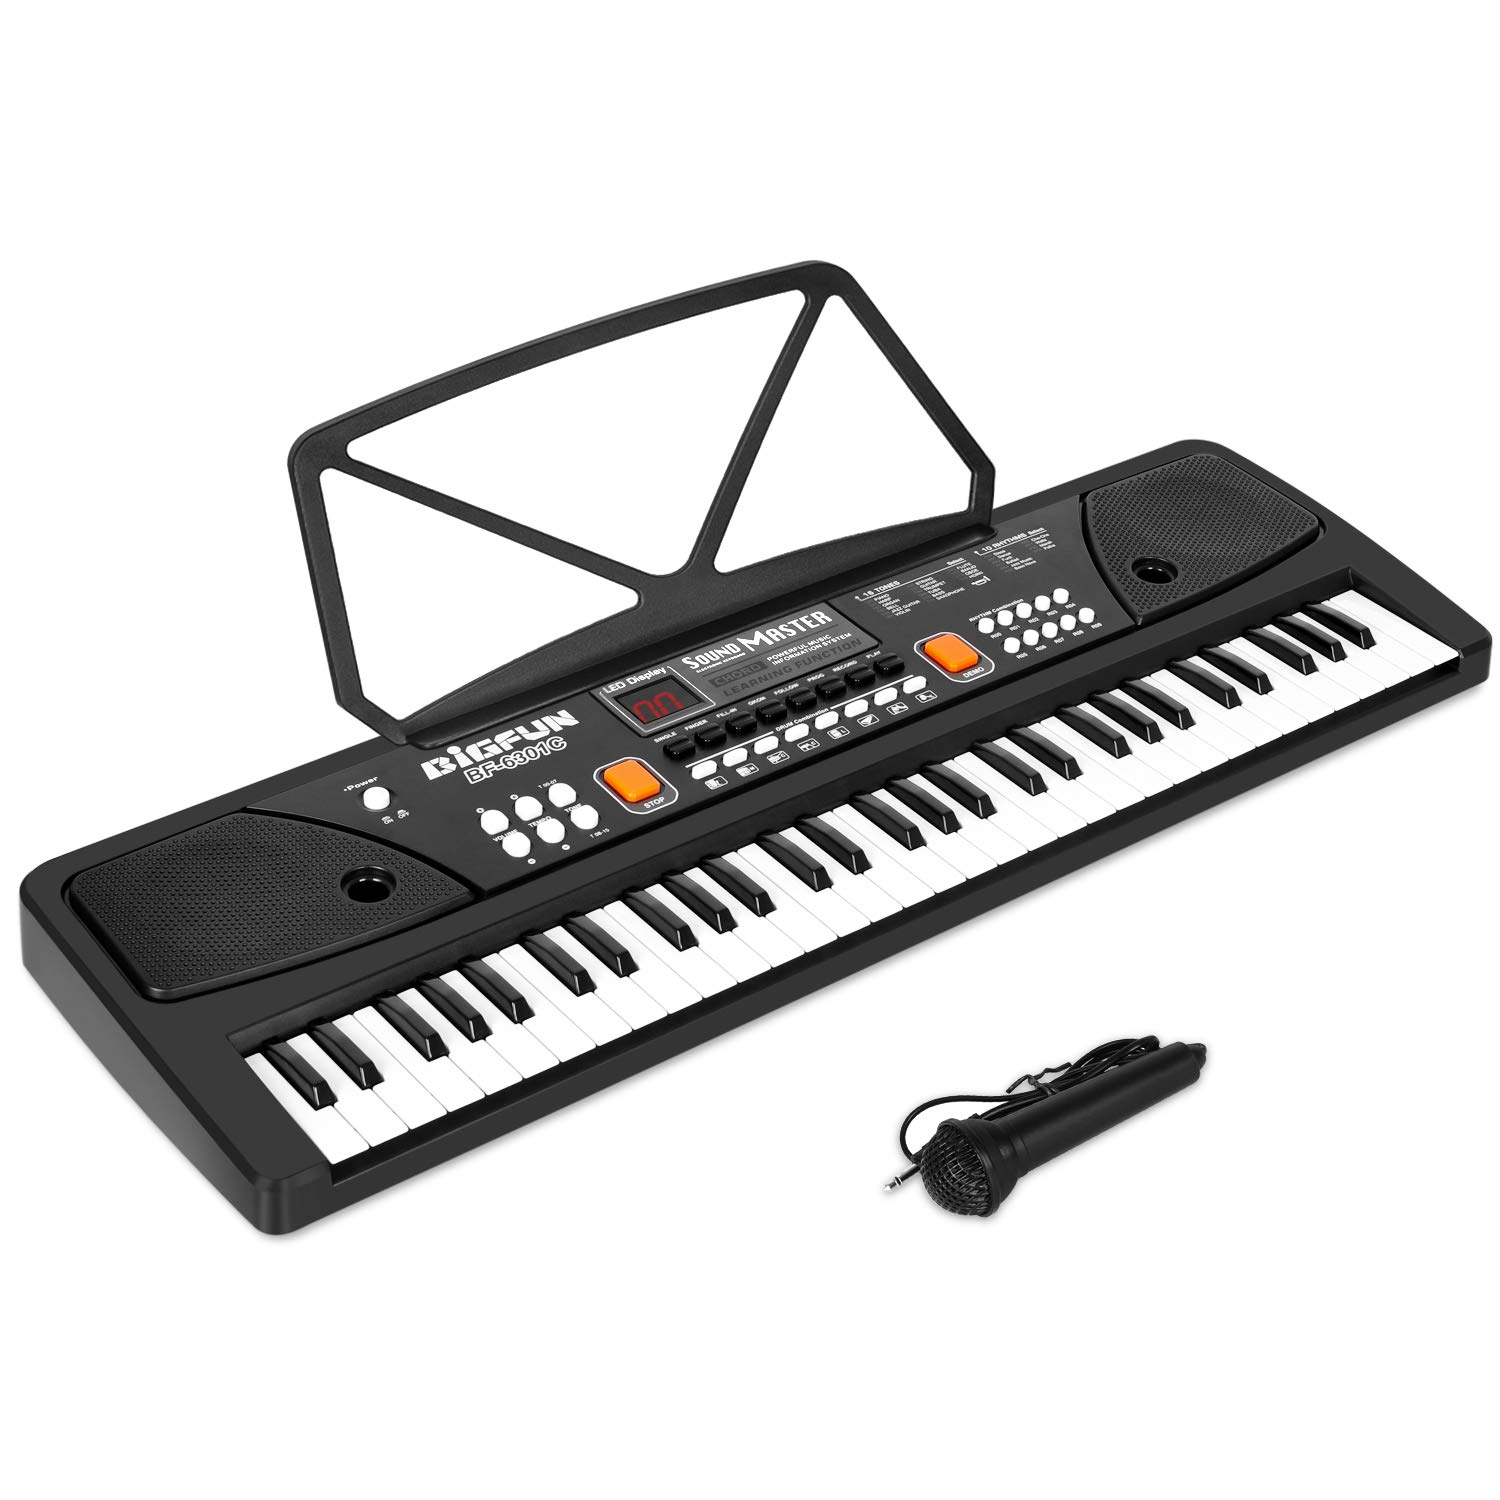 M SANMERSEN Kids Piano, 61 Keys LED Display Piano Keyboard with Microphone AUX-in Jack Musical Instrument with Music Book Bracket First Piano Gifts for 3-12 Years Old Boys Girls by M SANMERSEN